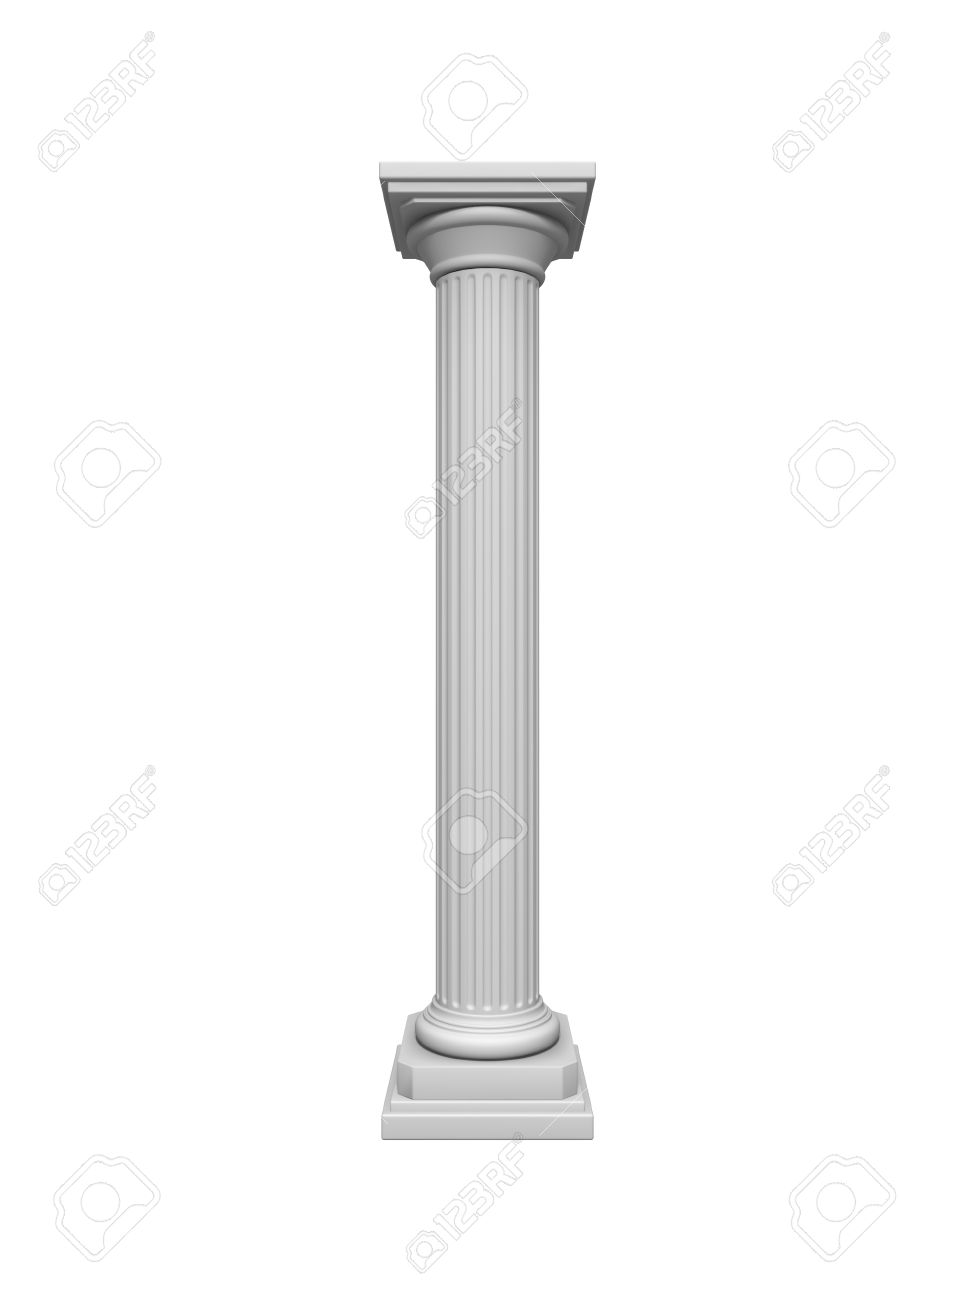 Architecture column isolated on a white Stock Photo - 10161060